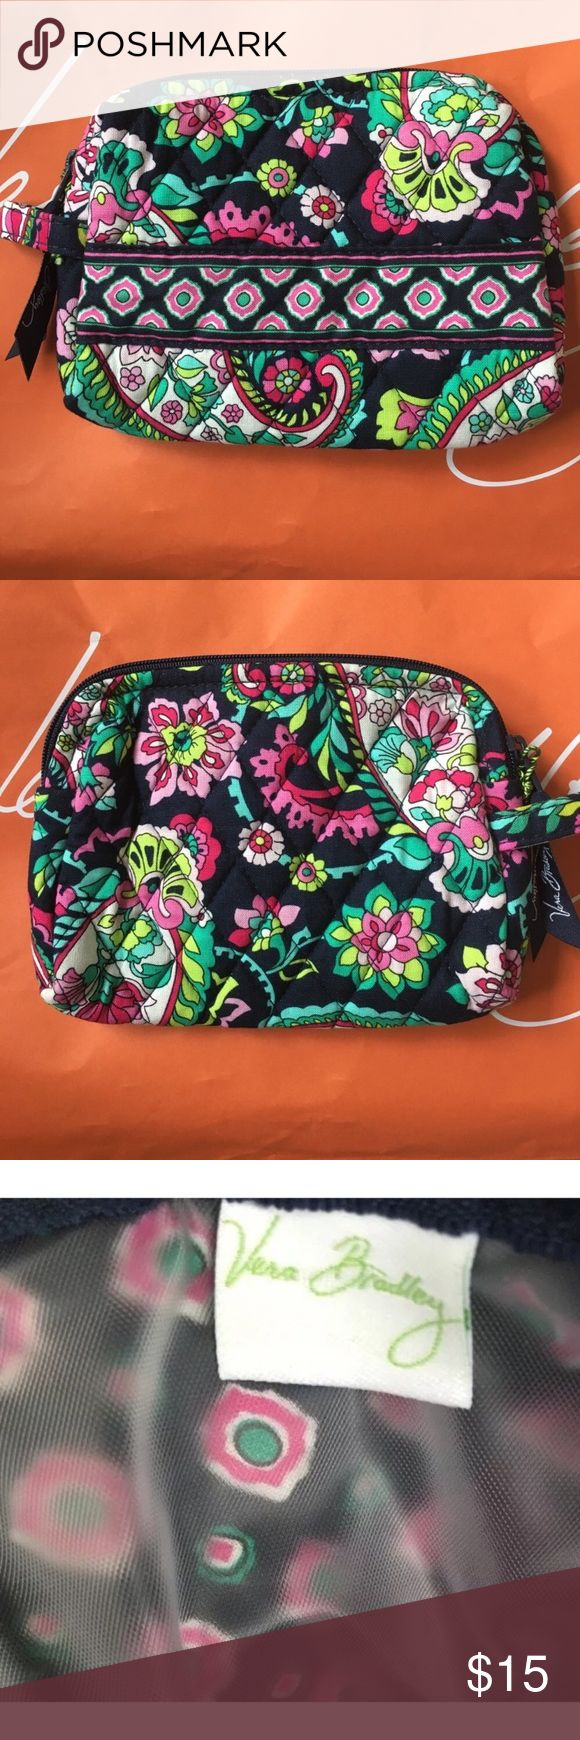 """SMALL Cosmetic Bag 🌷 Petal Paisley Storage clear out 🦄 Never used. PERFECT brand new with tags. No fading, rips, or funky smells. Smoke free home. Kept in a pet free area of my home 🦄 Plastic lined 💕 Bundle to SAVE 💕 SIZE - • Small: 6.5"""" h, 7"""" w, 1"""" d (pattern placement may vary from photos) Vera Bradley Bags Cosmetic Bags & Cases"""